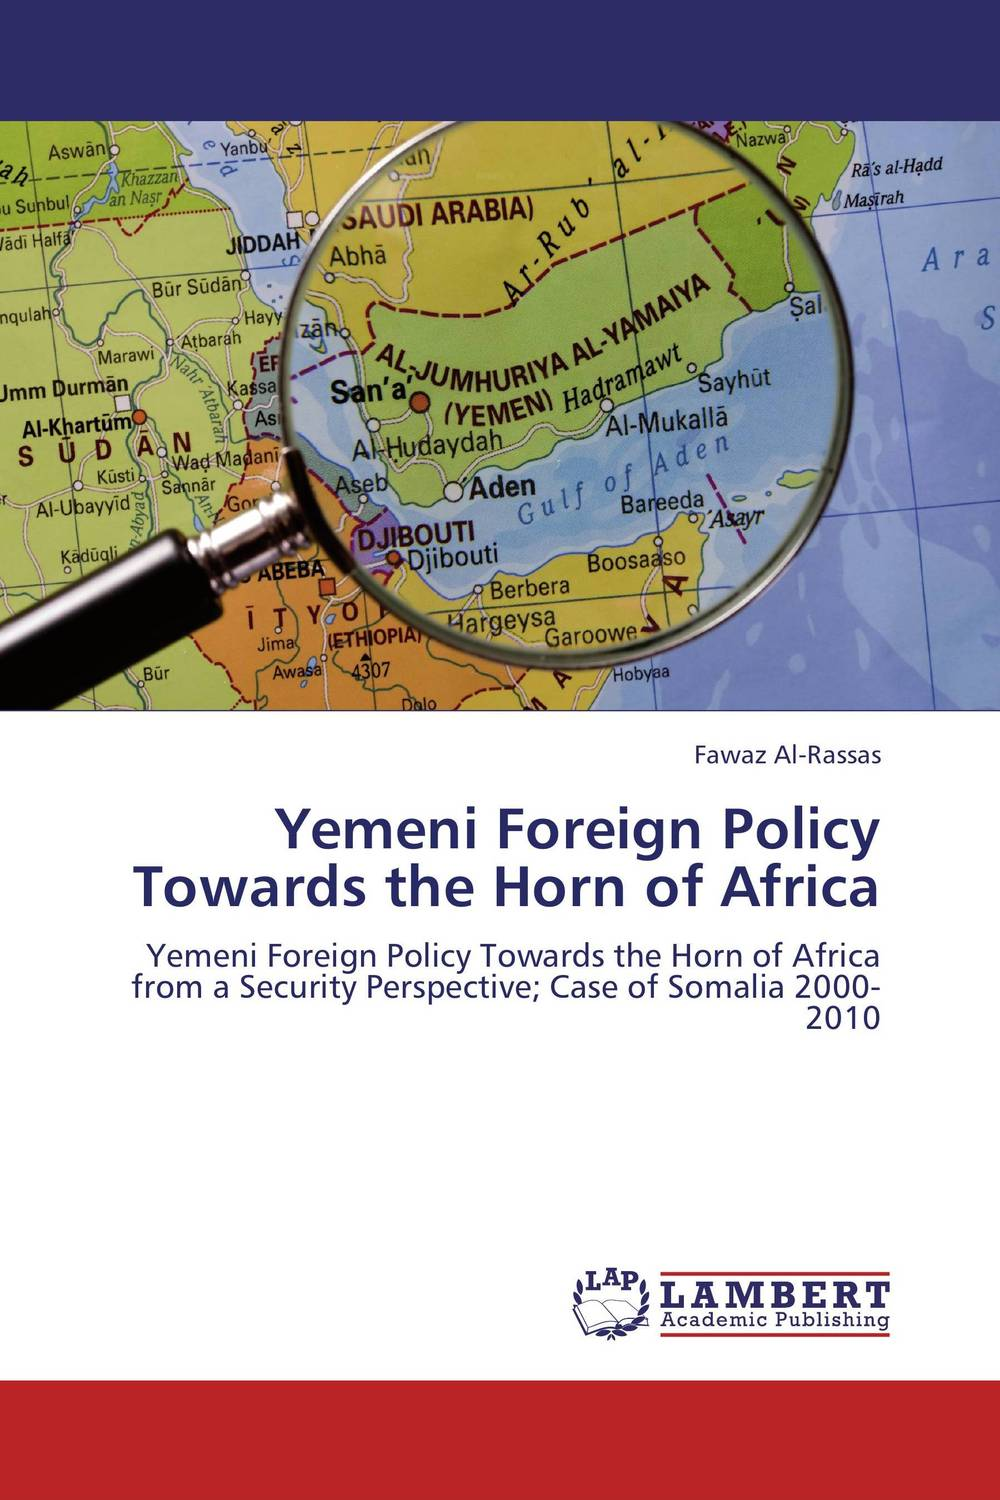 Фото Yemeni Foreign Policy Towards the Horn of Africa 110db loud security alarm siren horn speaker buzzer black red dc 6 16v